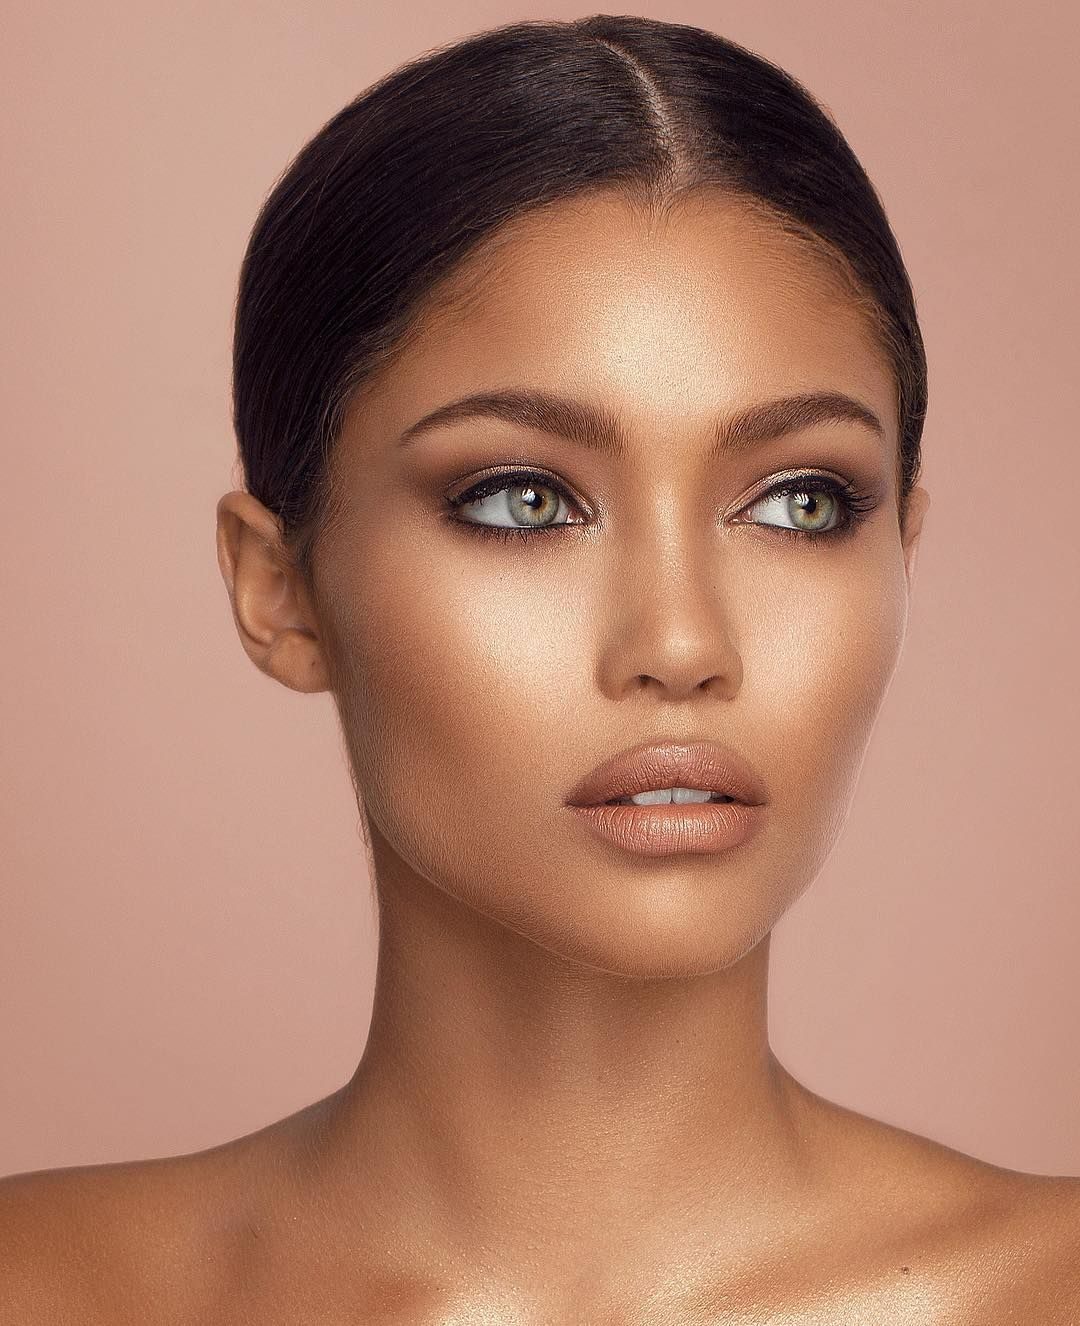 audreyana michel ft. photoshop | tan skin makeup, tanned